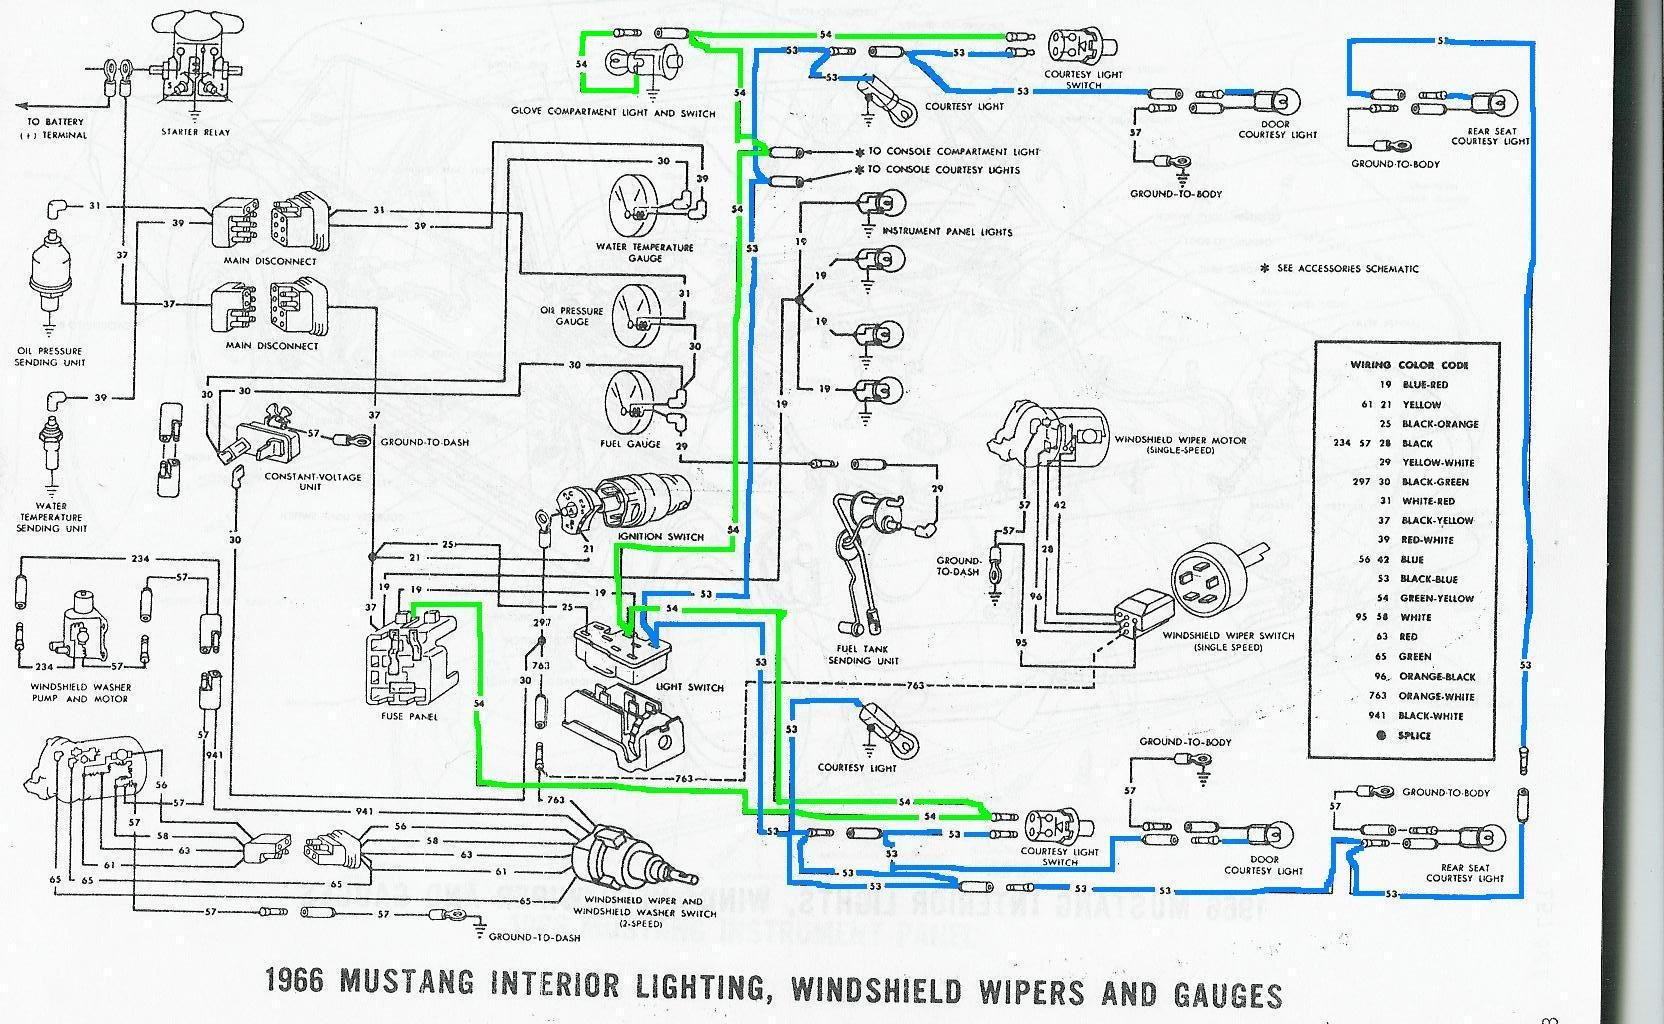 66 mustang ignition wiring diagram for a switched outlet 1965 coil 18 6 stromoeko de 65 tail light schematic peiel skyscorner u2022 rh